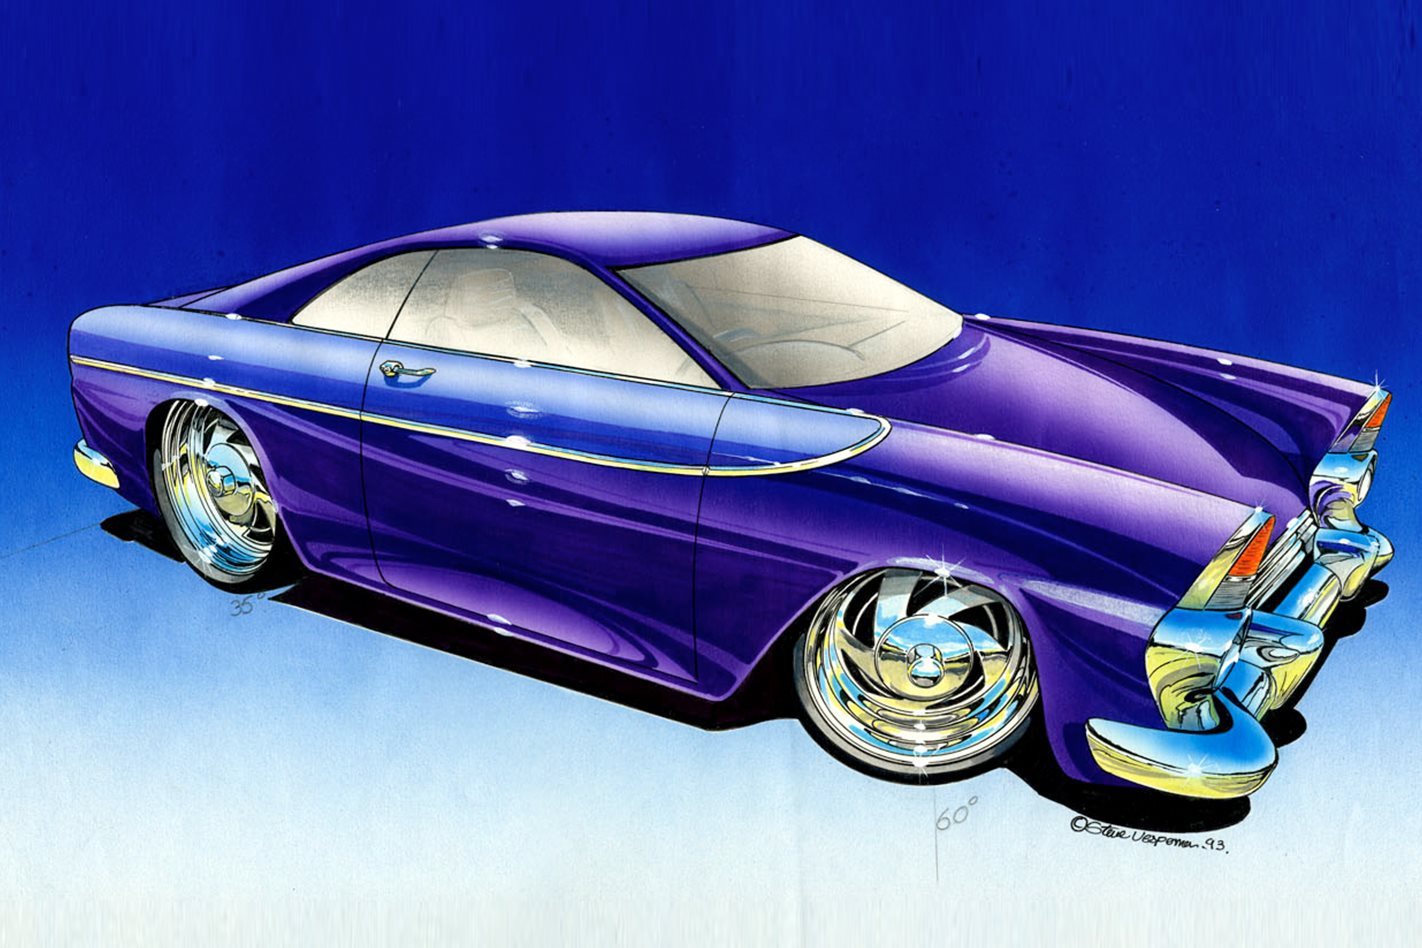 Holden FB Tailspin concept drawing